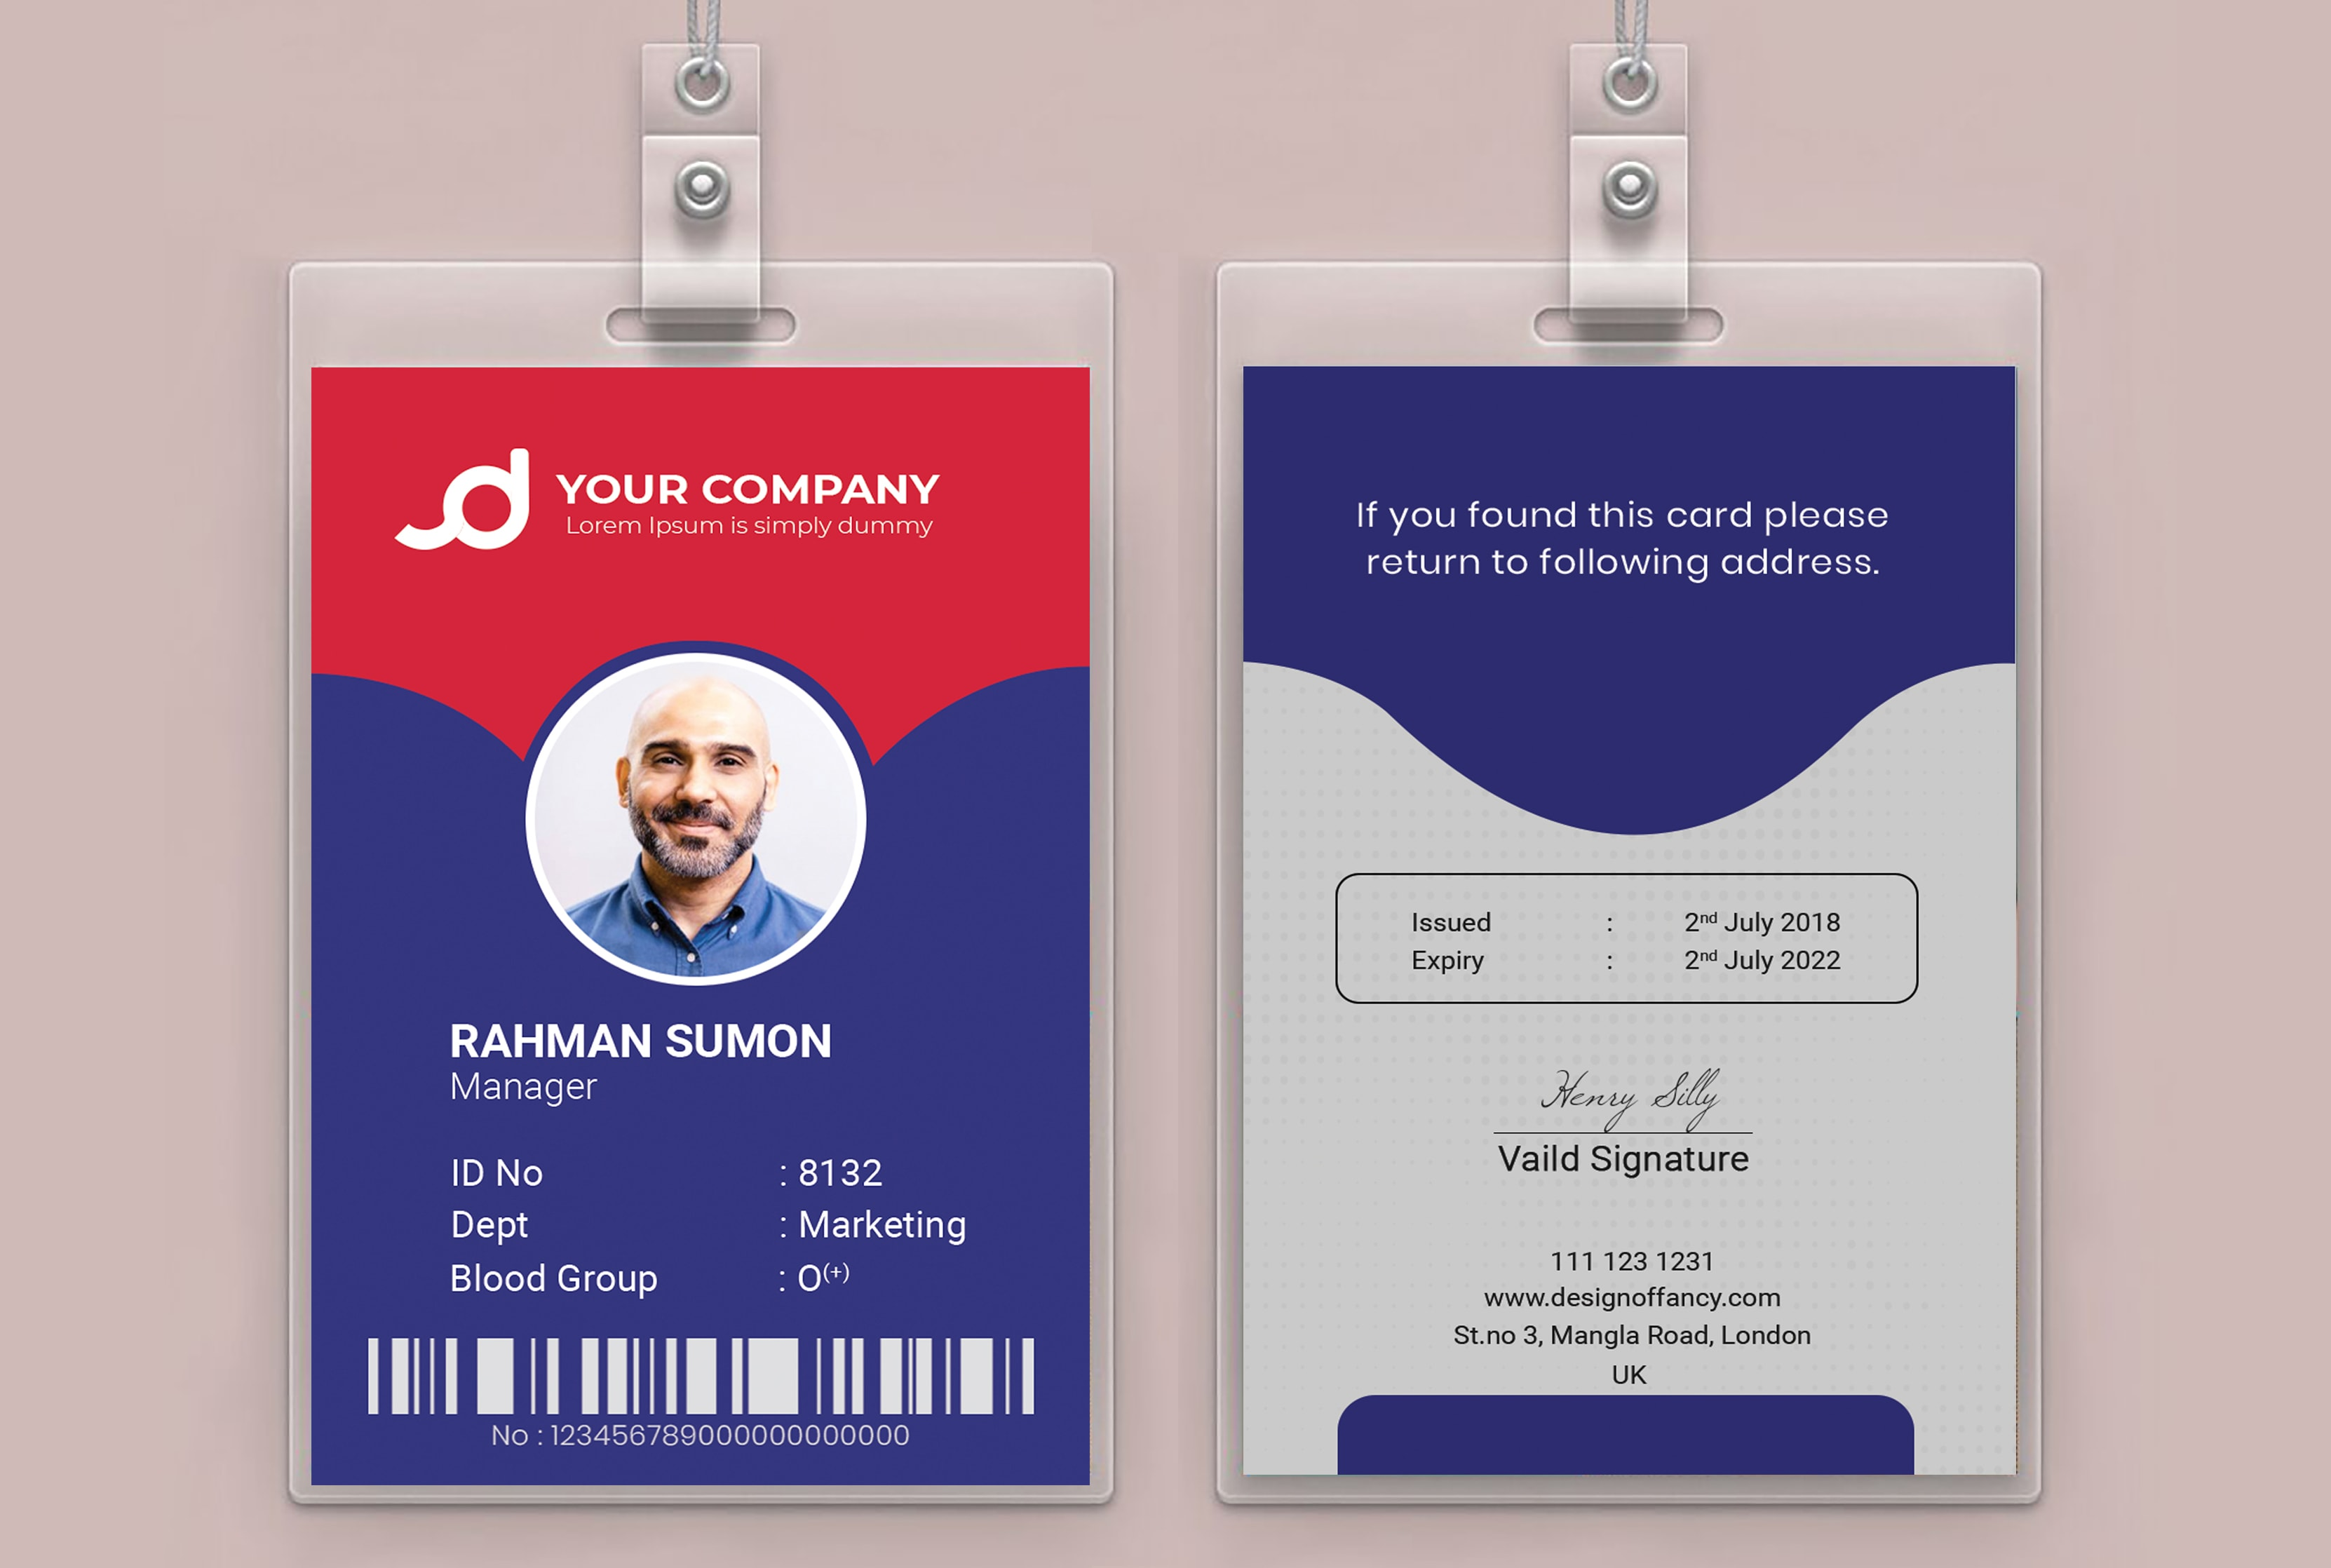 Company Id Card Format from fiverr-res.cloudinary.com